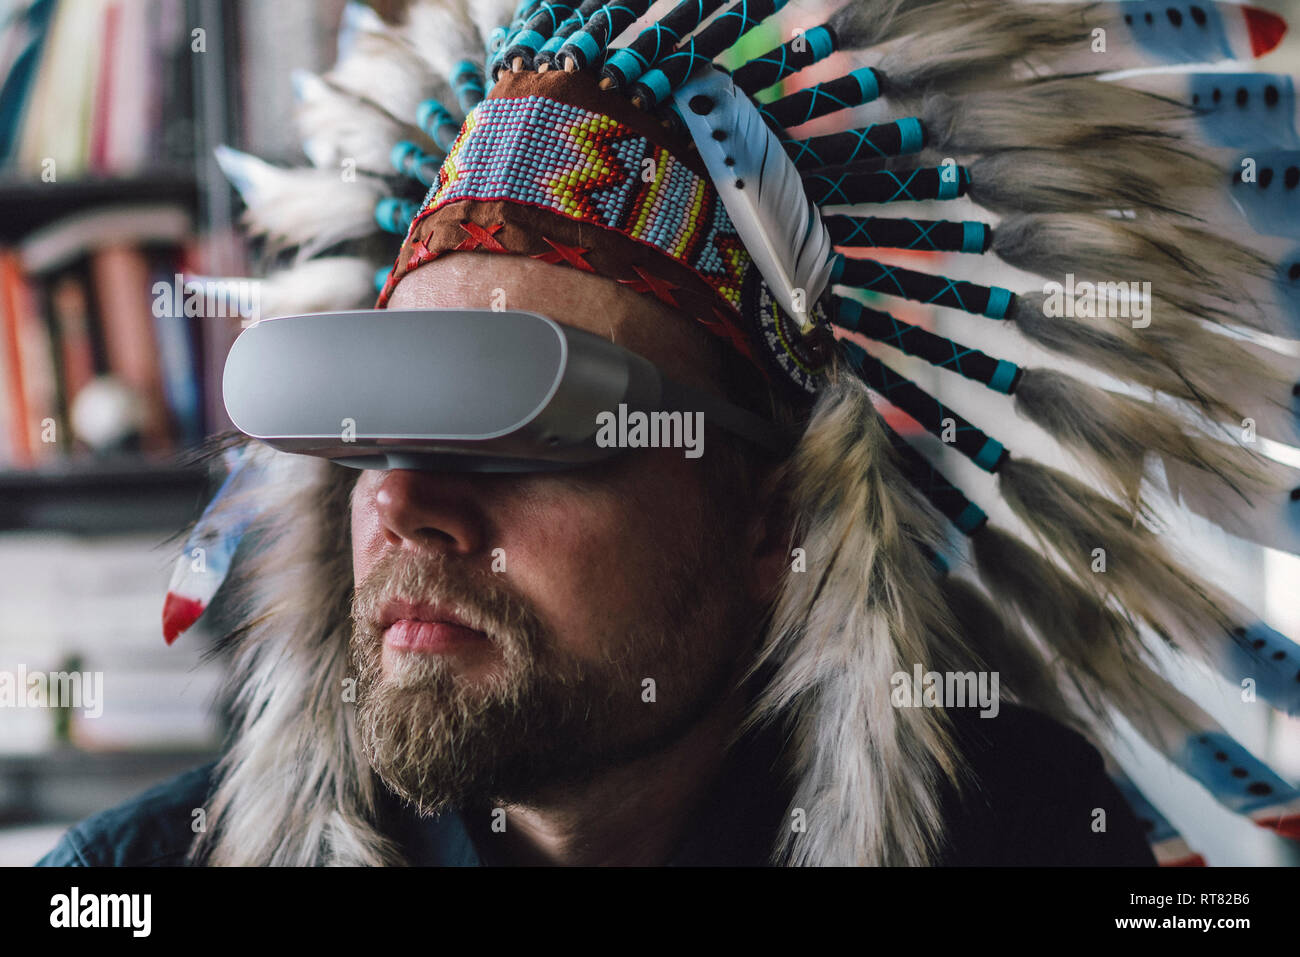 Man wearing Indian headdress and VR glasses in office - Stock Image